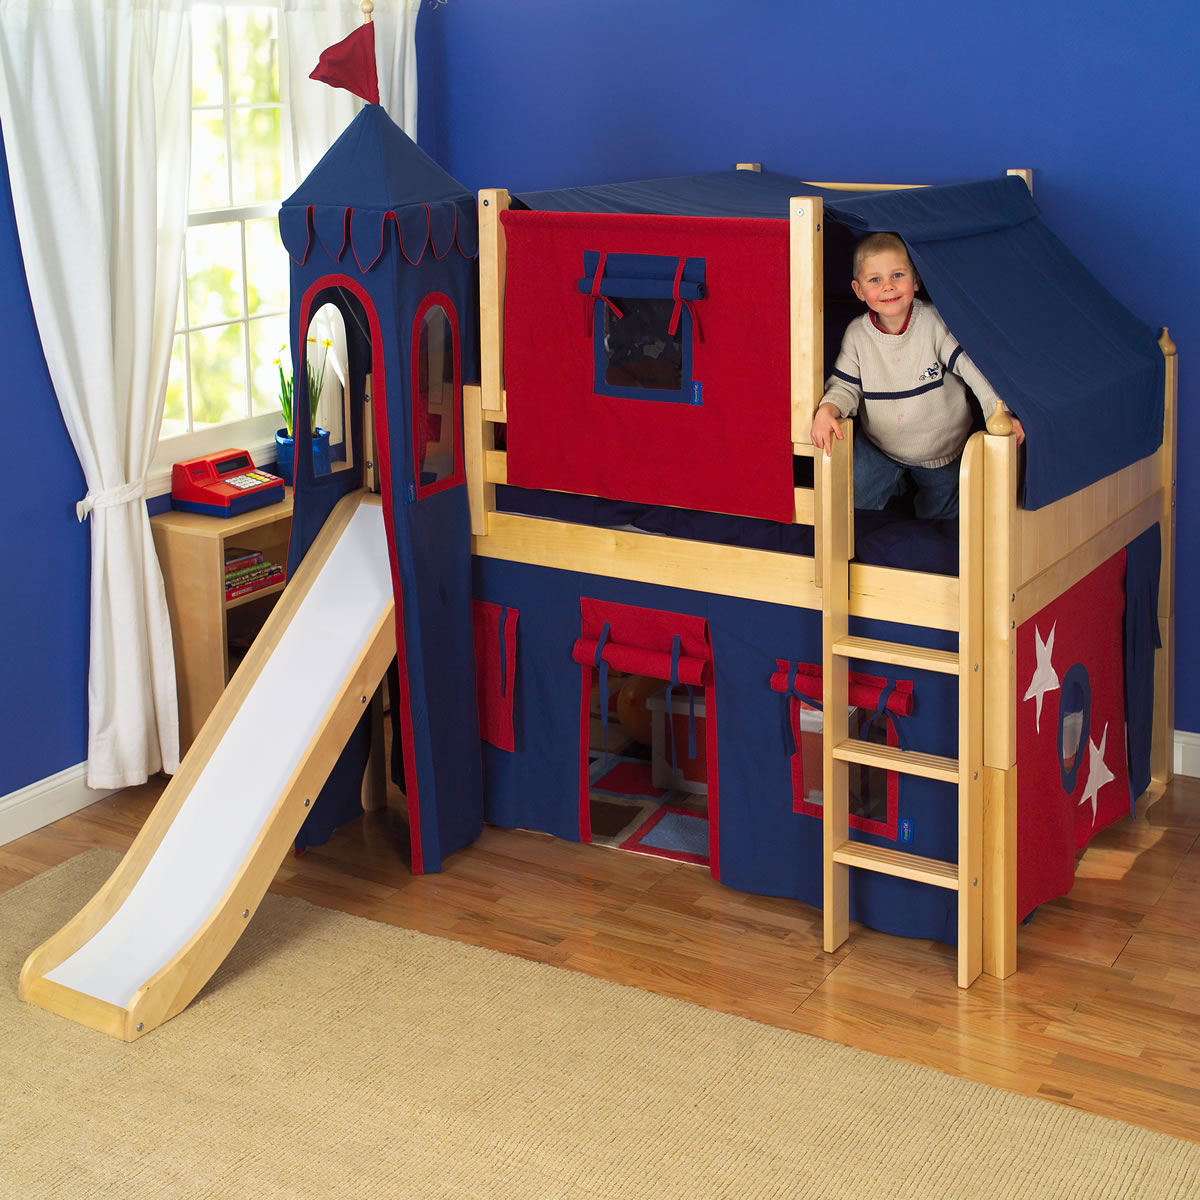 Bunk Beds and Loft Beds with Slide - Browse, Discover Best Deals ...